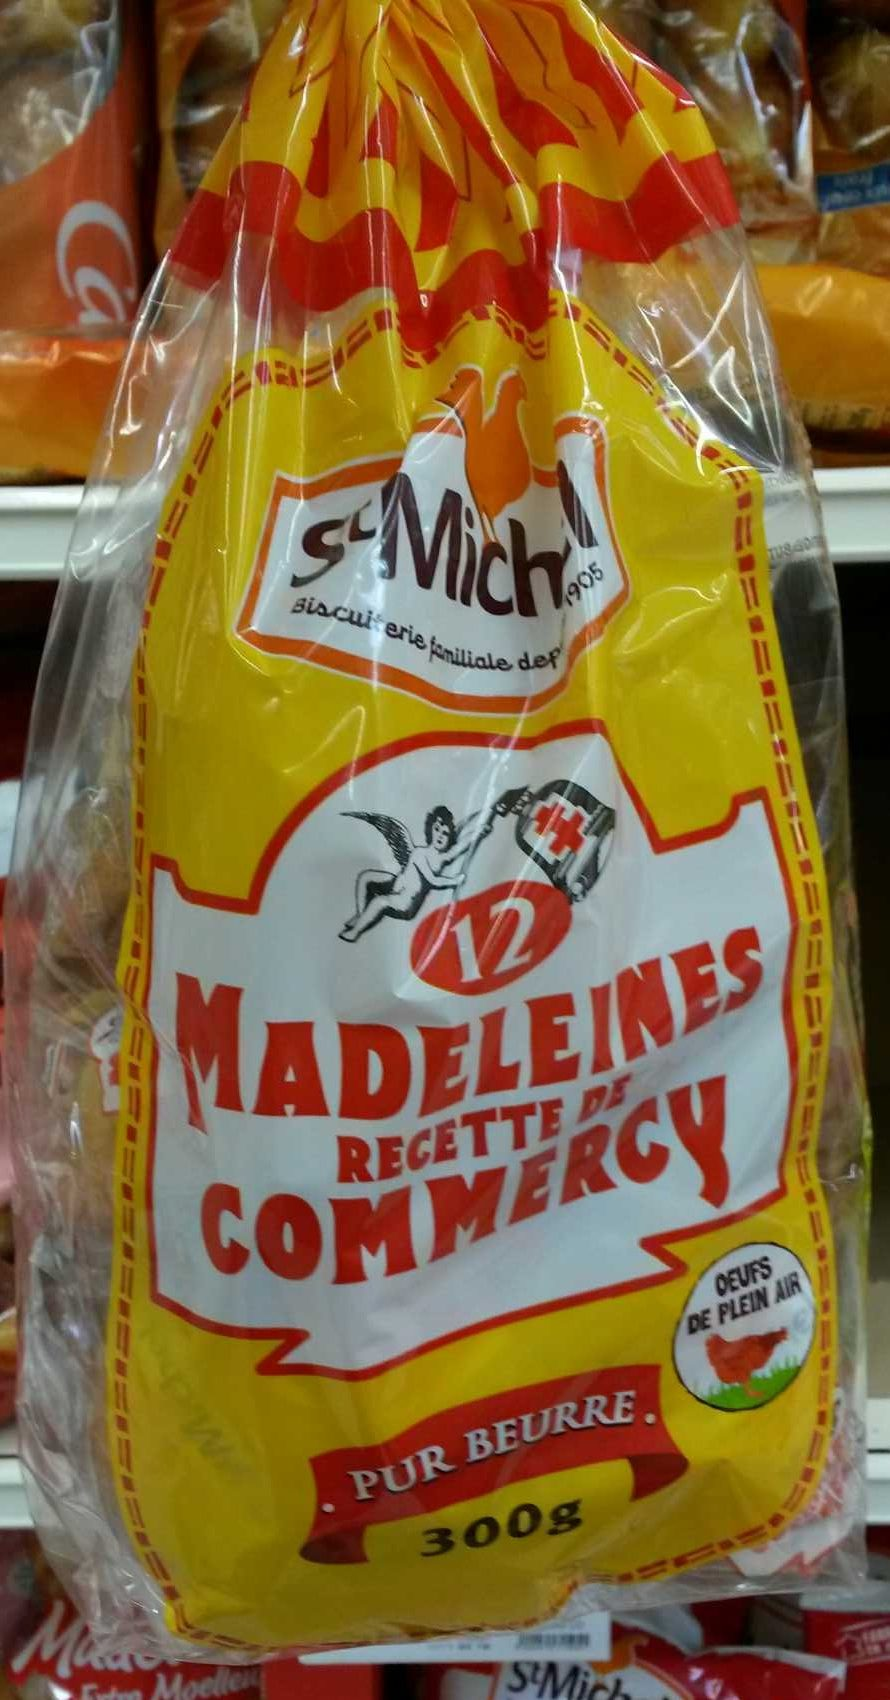 Madeleines recette de Commercy - Product - fr